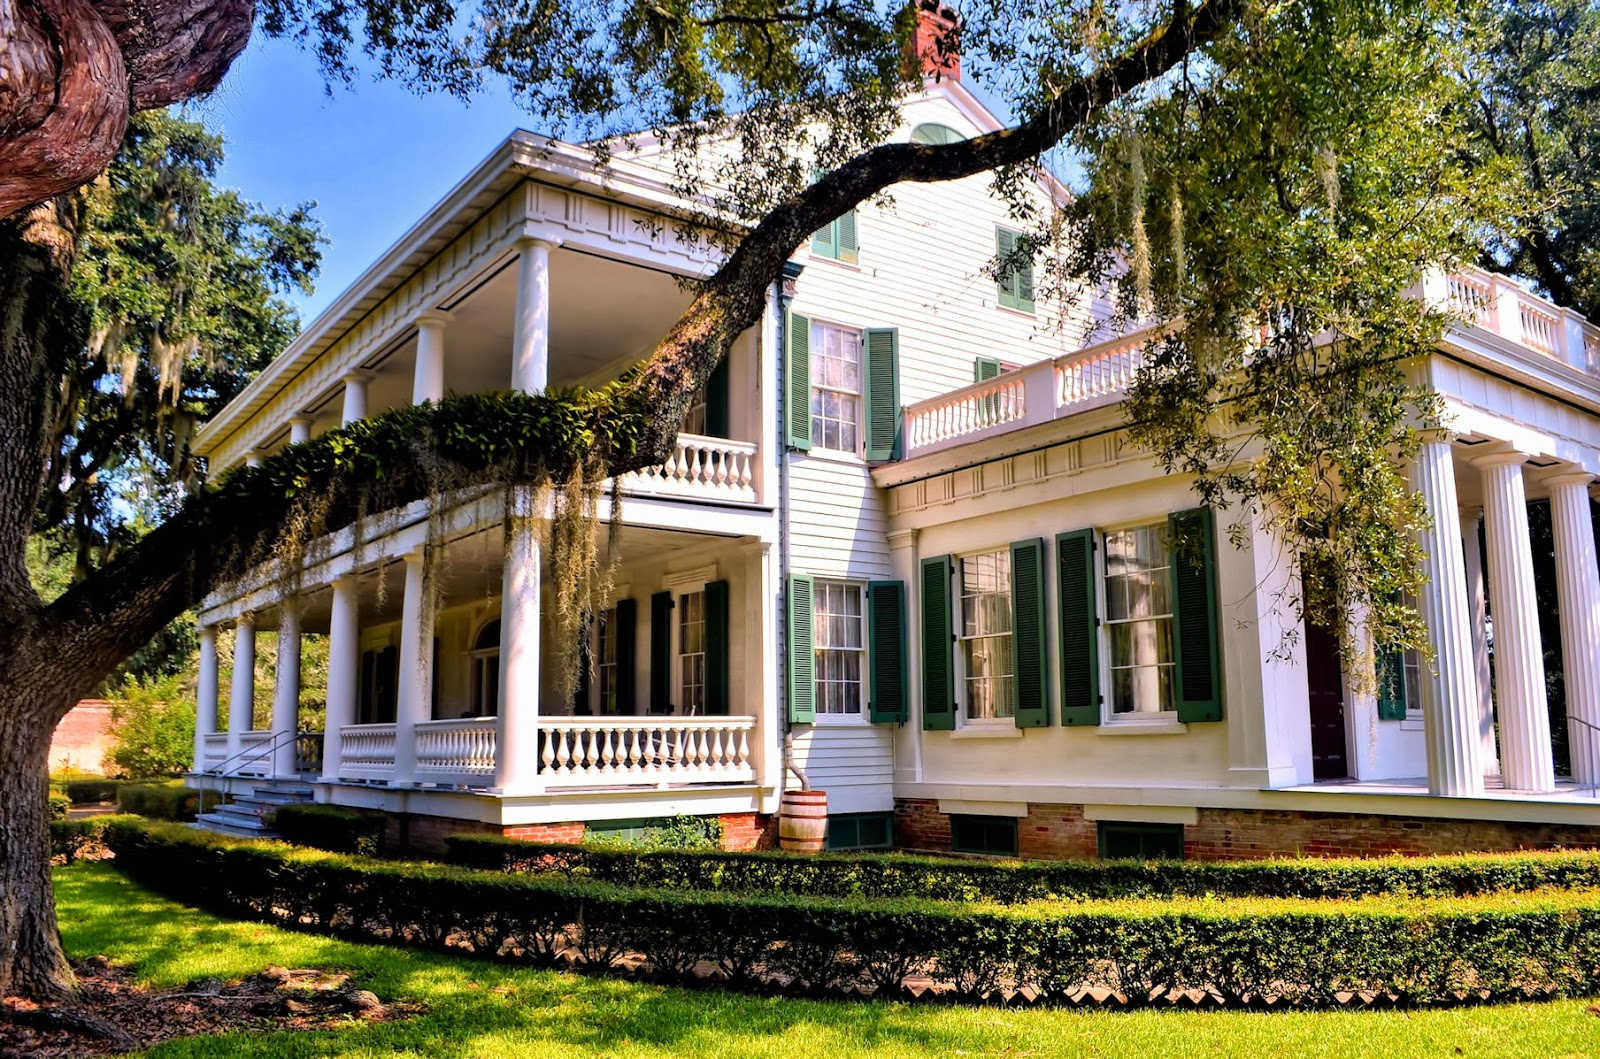 5 Things You Don't Know About St. Francisville, Louisiana - Southern on getting ready for 2016, house plans for 2016, new plans for 2015,